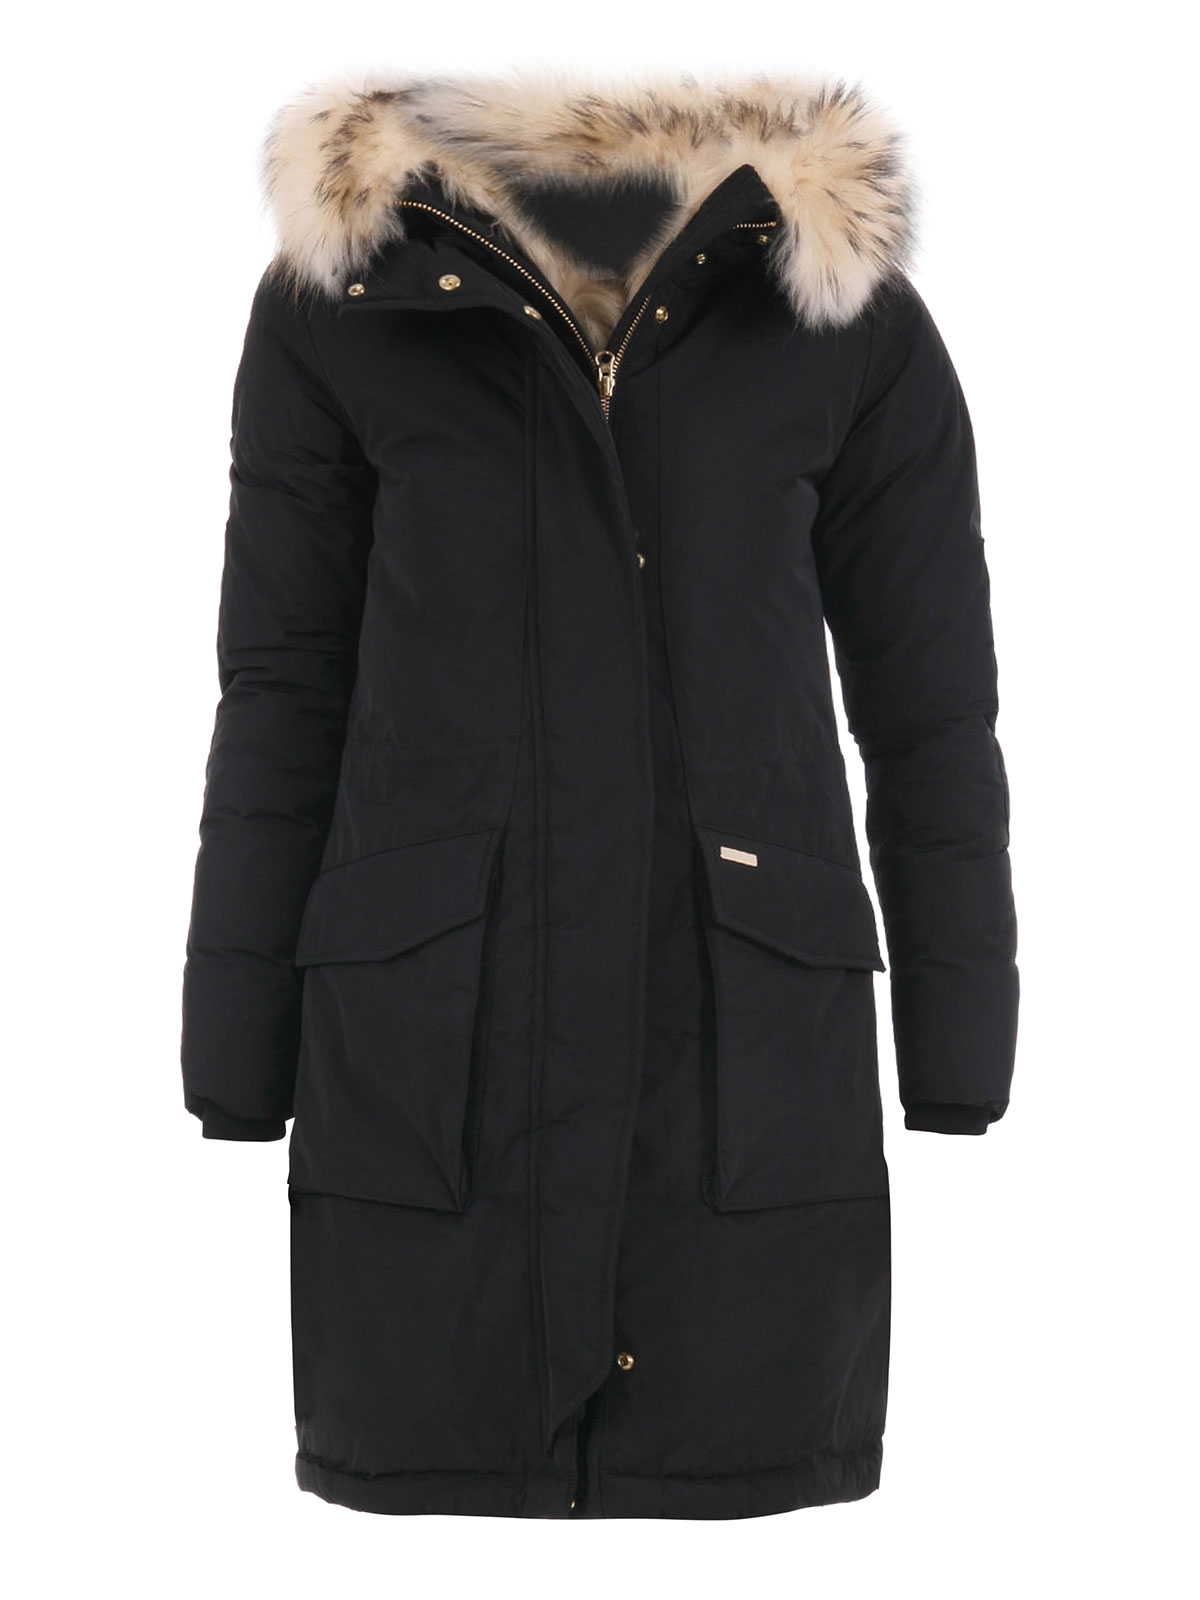 parka fur damen schwarz von woolrich parkas ikrix. Black Bedroom Furniture Sets. Home Design Ideas